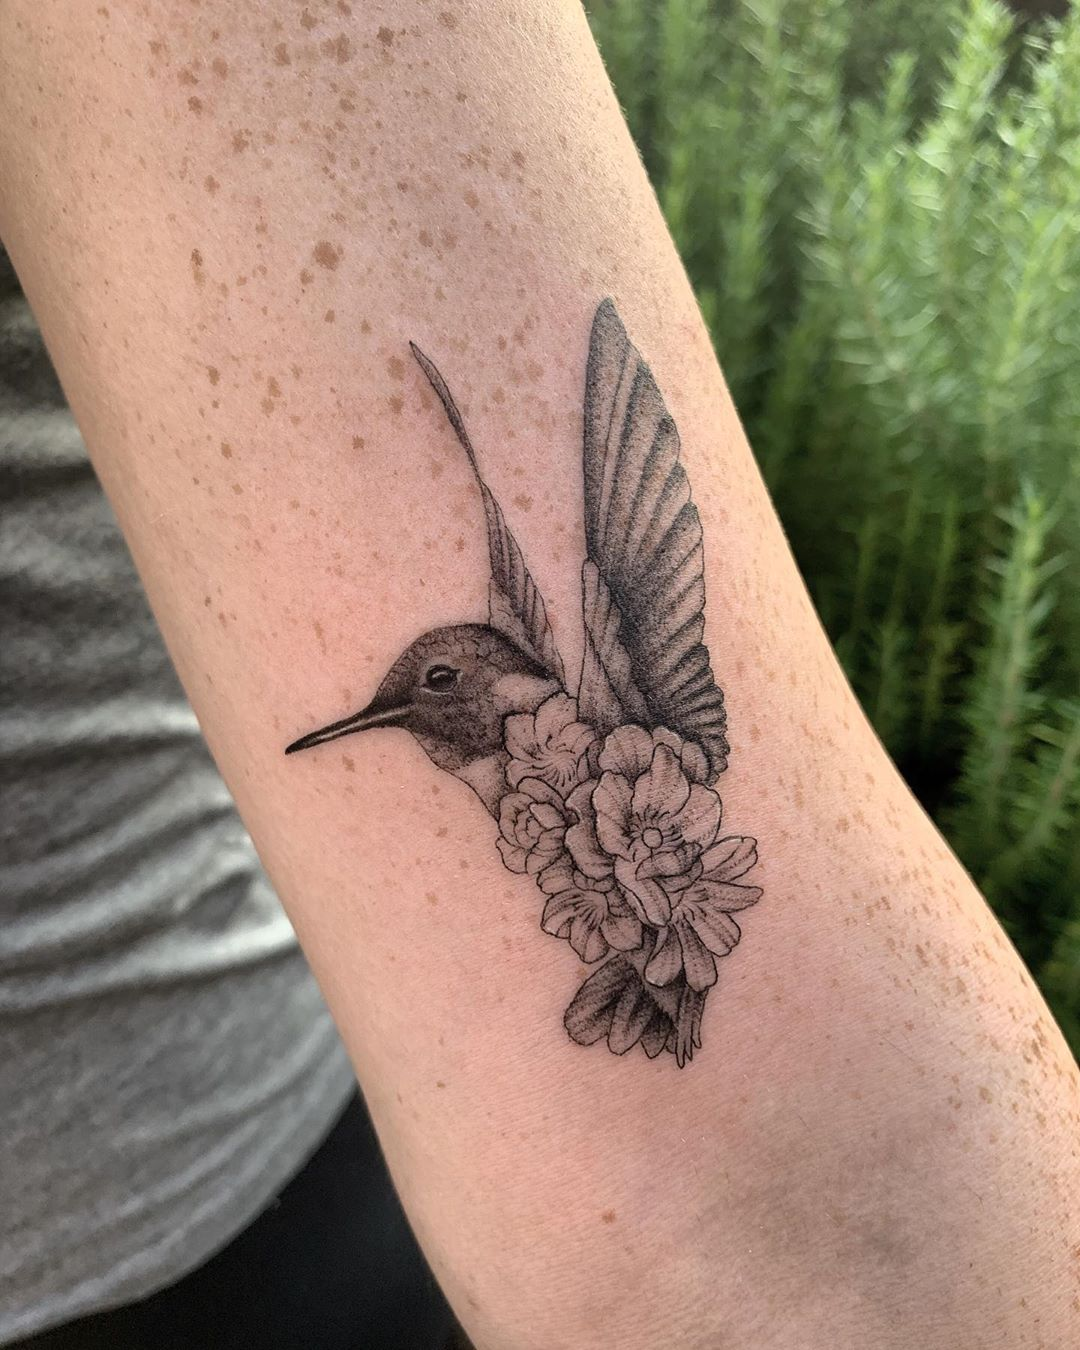 Hummingbird with a Body Made of Flowers